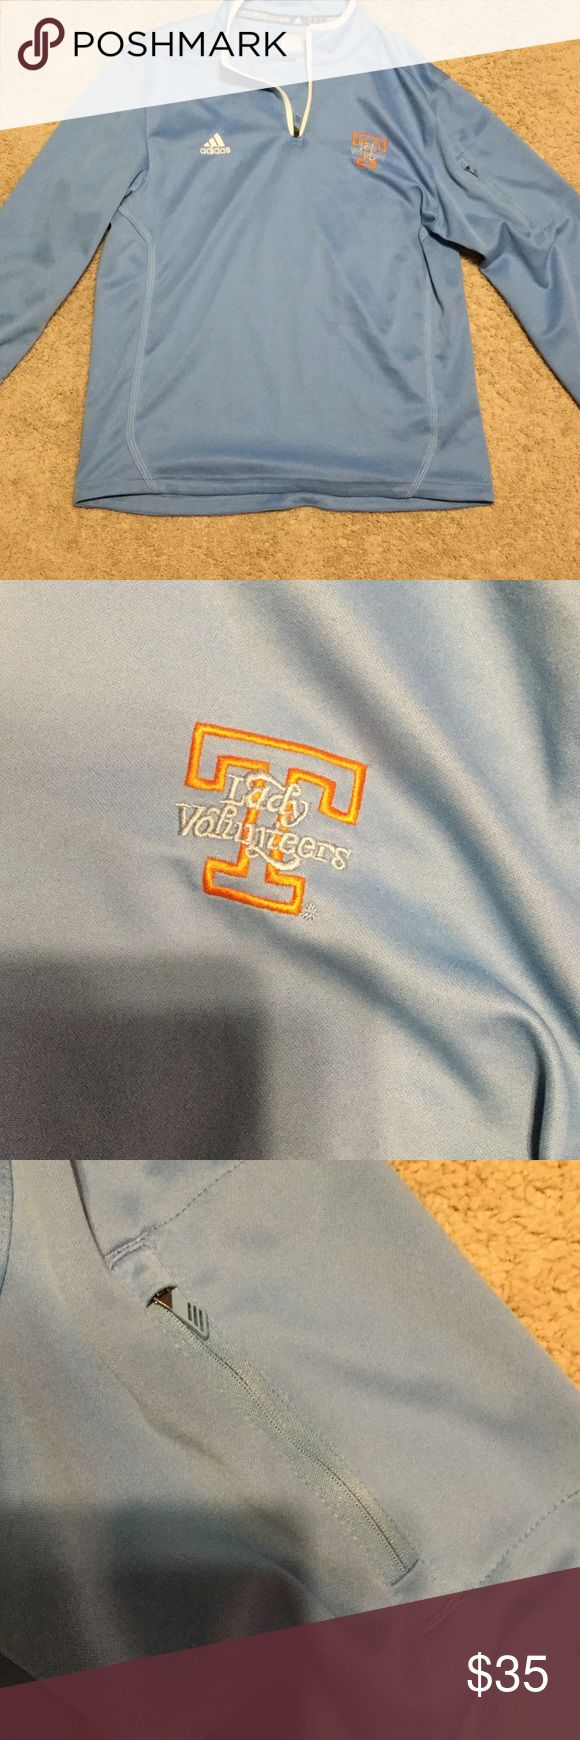 """Adidas """"Lady Volunteers"""" pullover Adidas climate pullover. With lady vols logo, purchased at a UT lady vols game. In great condition. 100% polyester Adidas Tops Sweatshirts & Hoodies"""